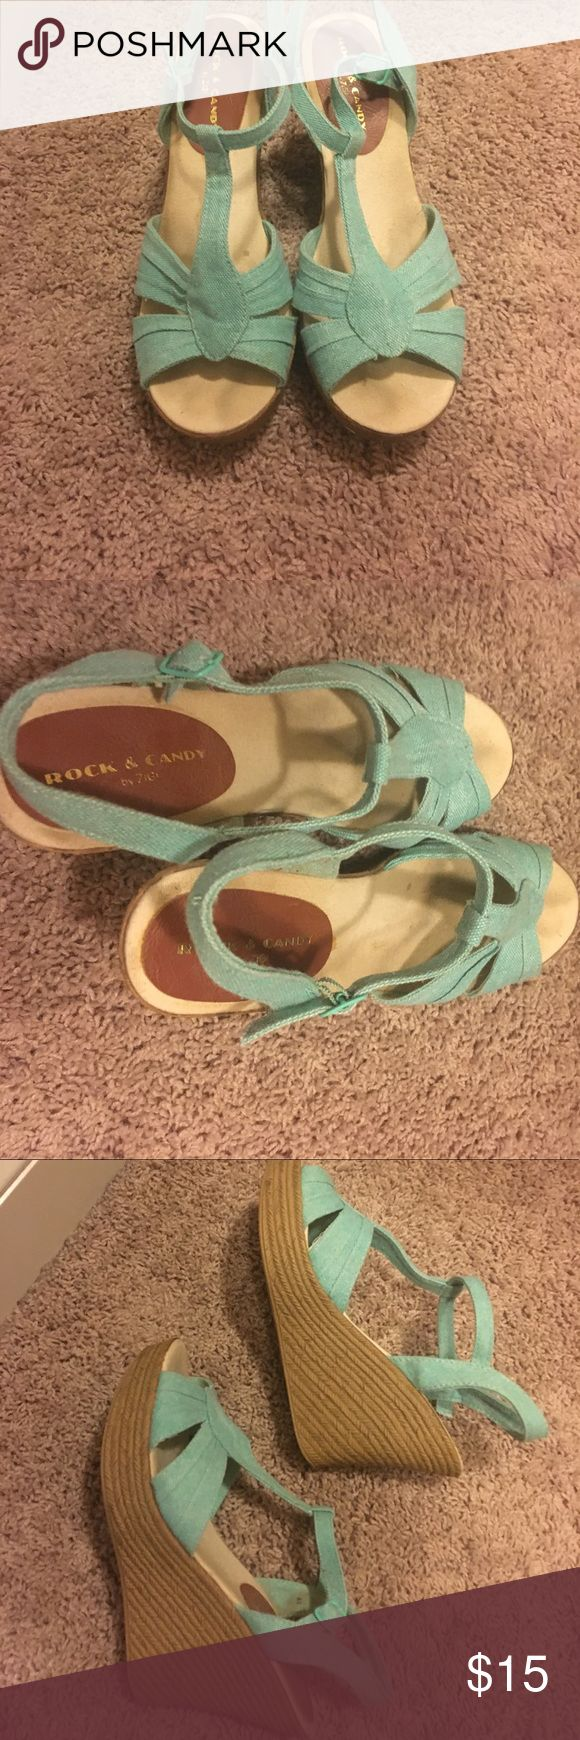 Teal wedge sandals These wedges are teal canvas with faux wood heel.  Worn but in good condition.  No scuffs on heels. Rock & Candy Shoes Wedges